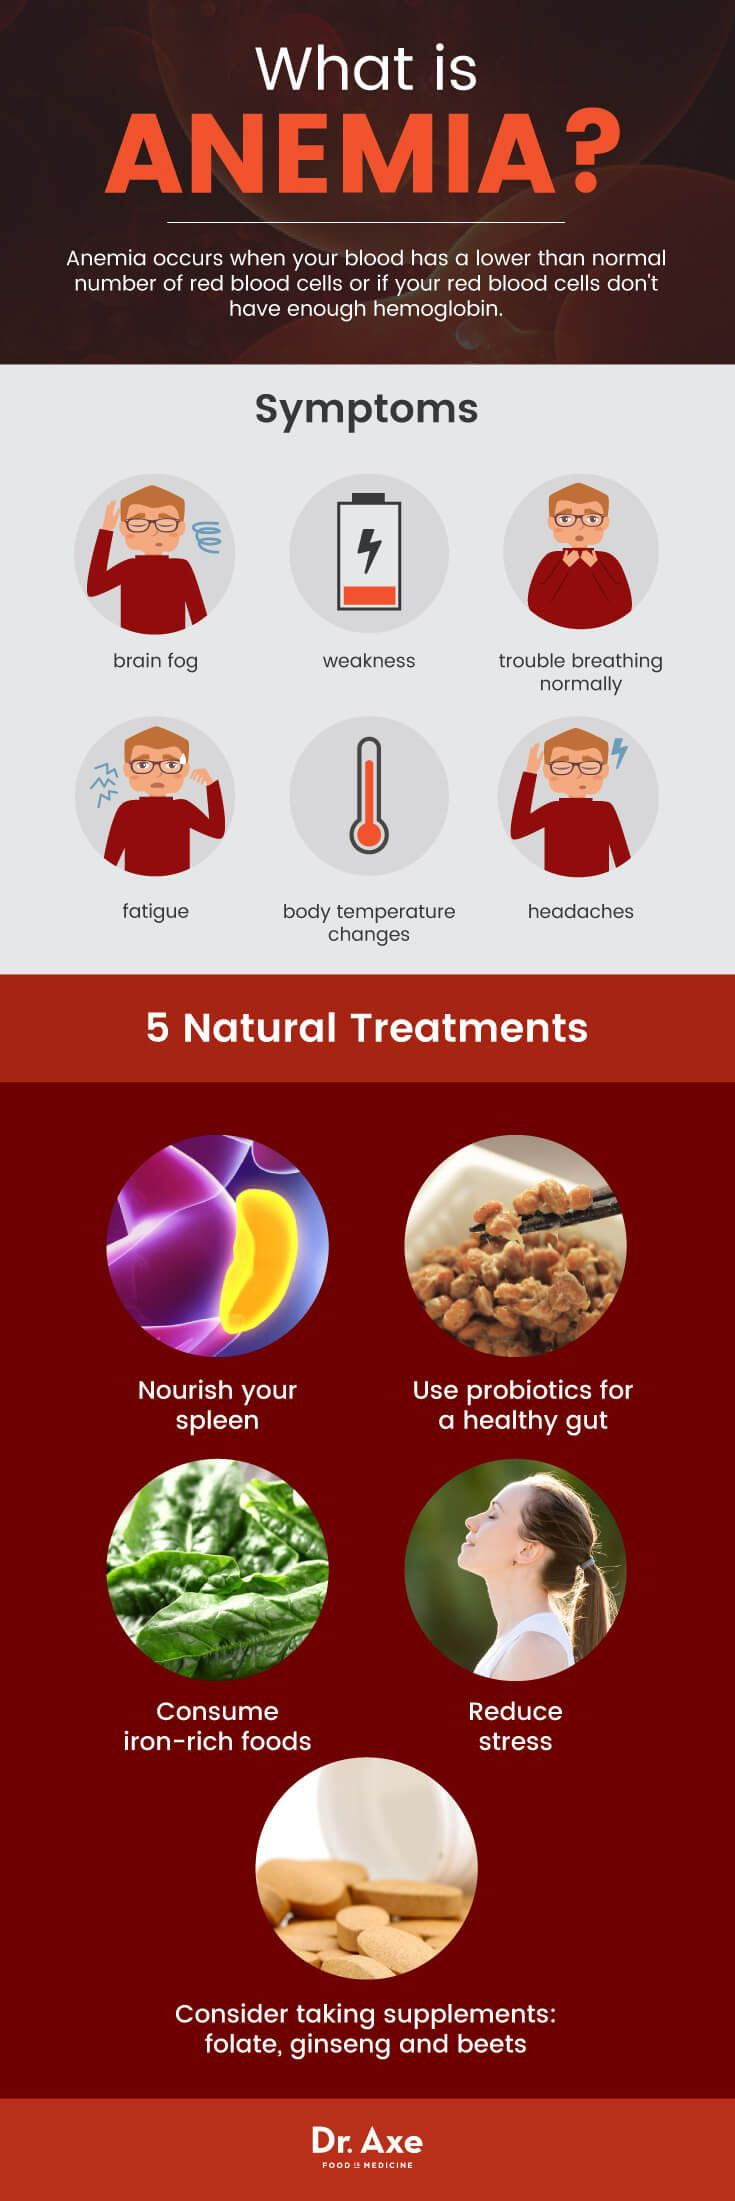 What is anemia + natural treatments